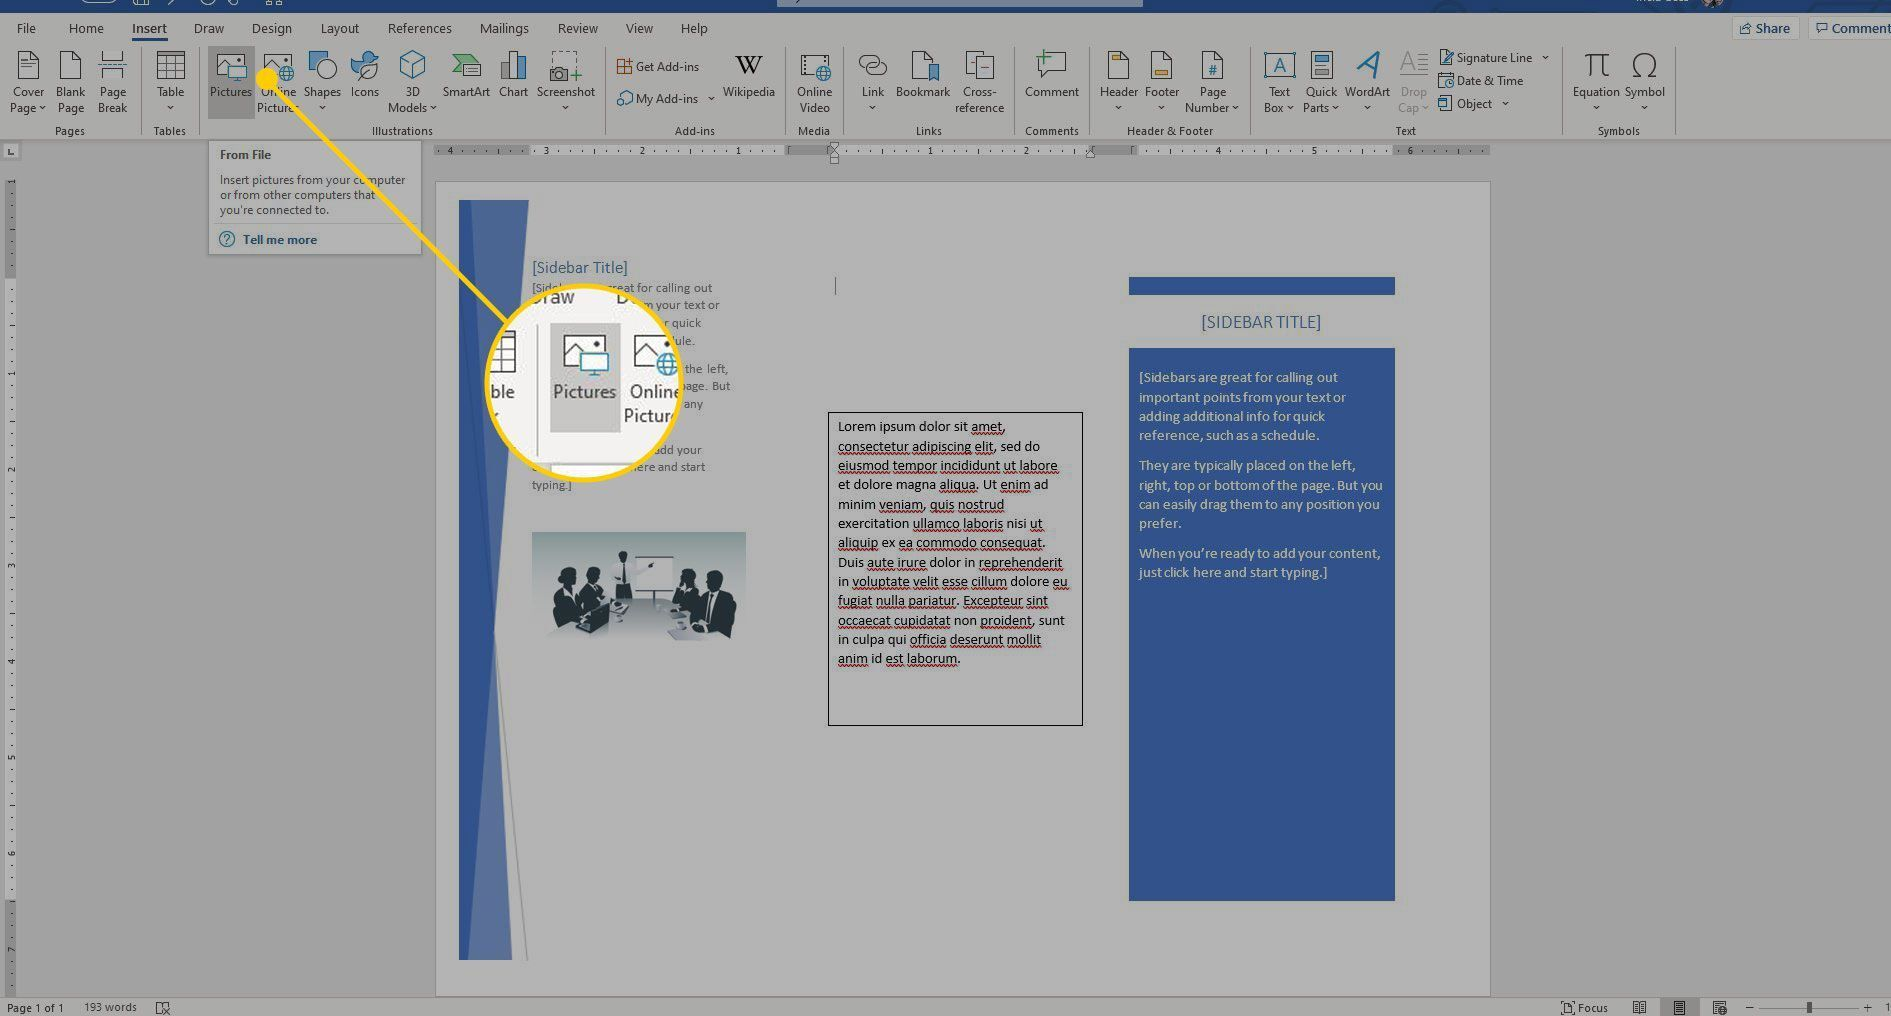 005 Marvelou M Word 2007 Brochure Template Highest Quality  Templates Microsoft Office Download For FreeFull